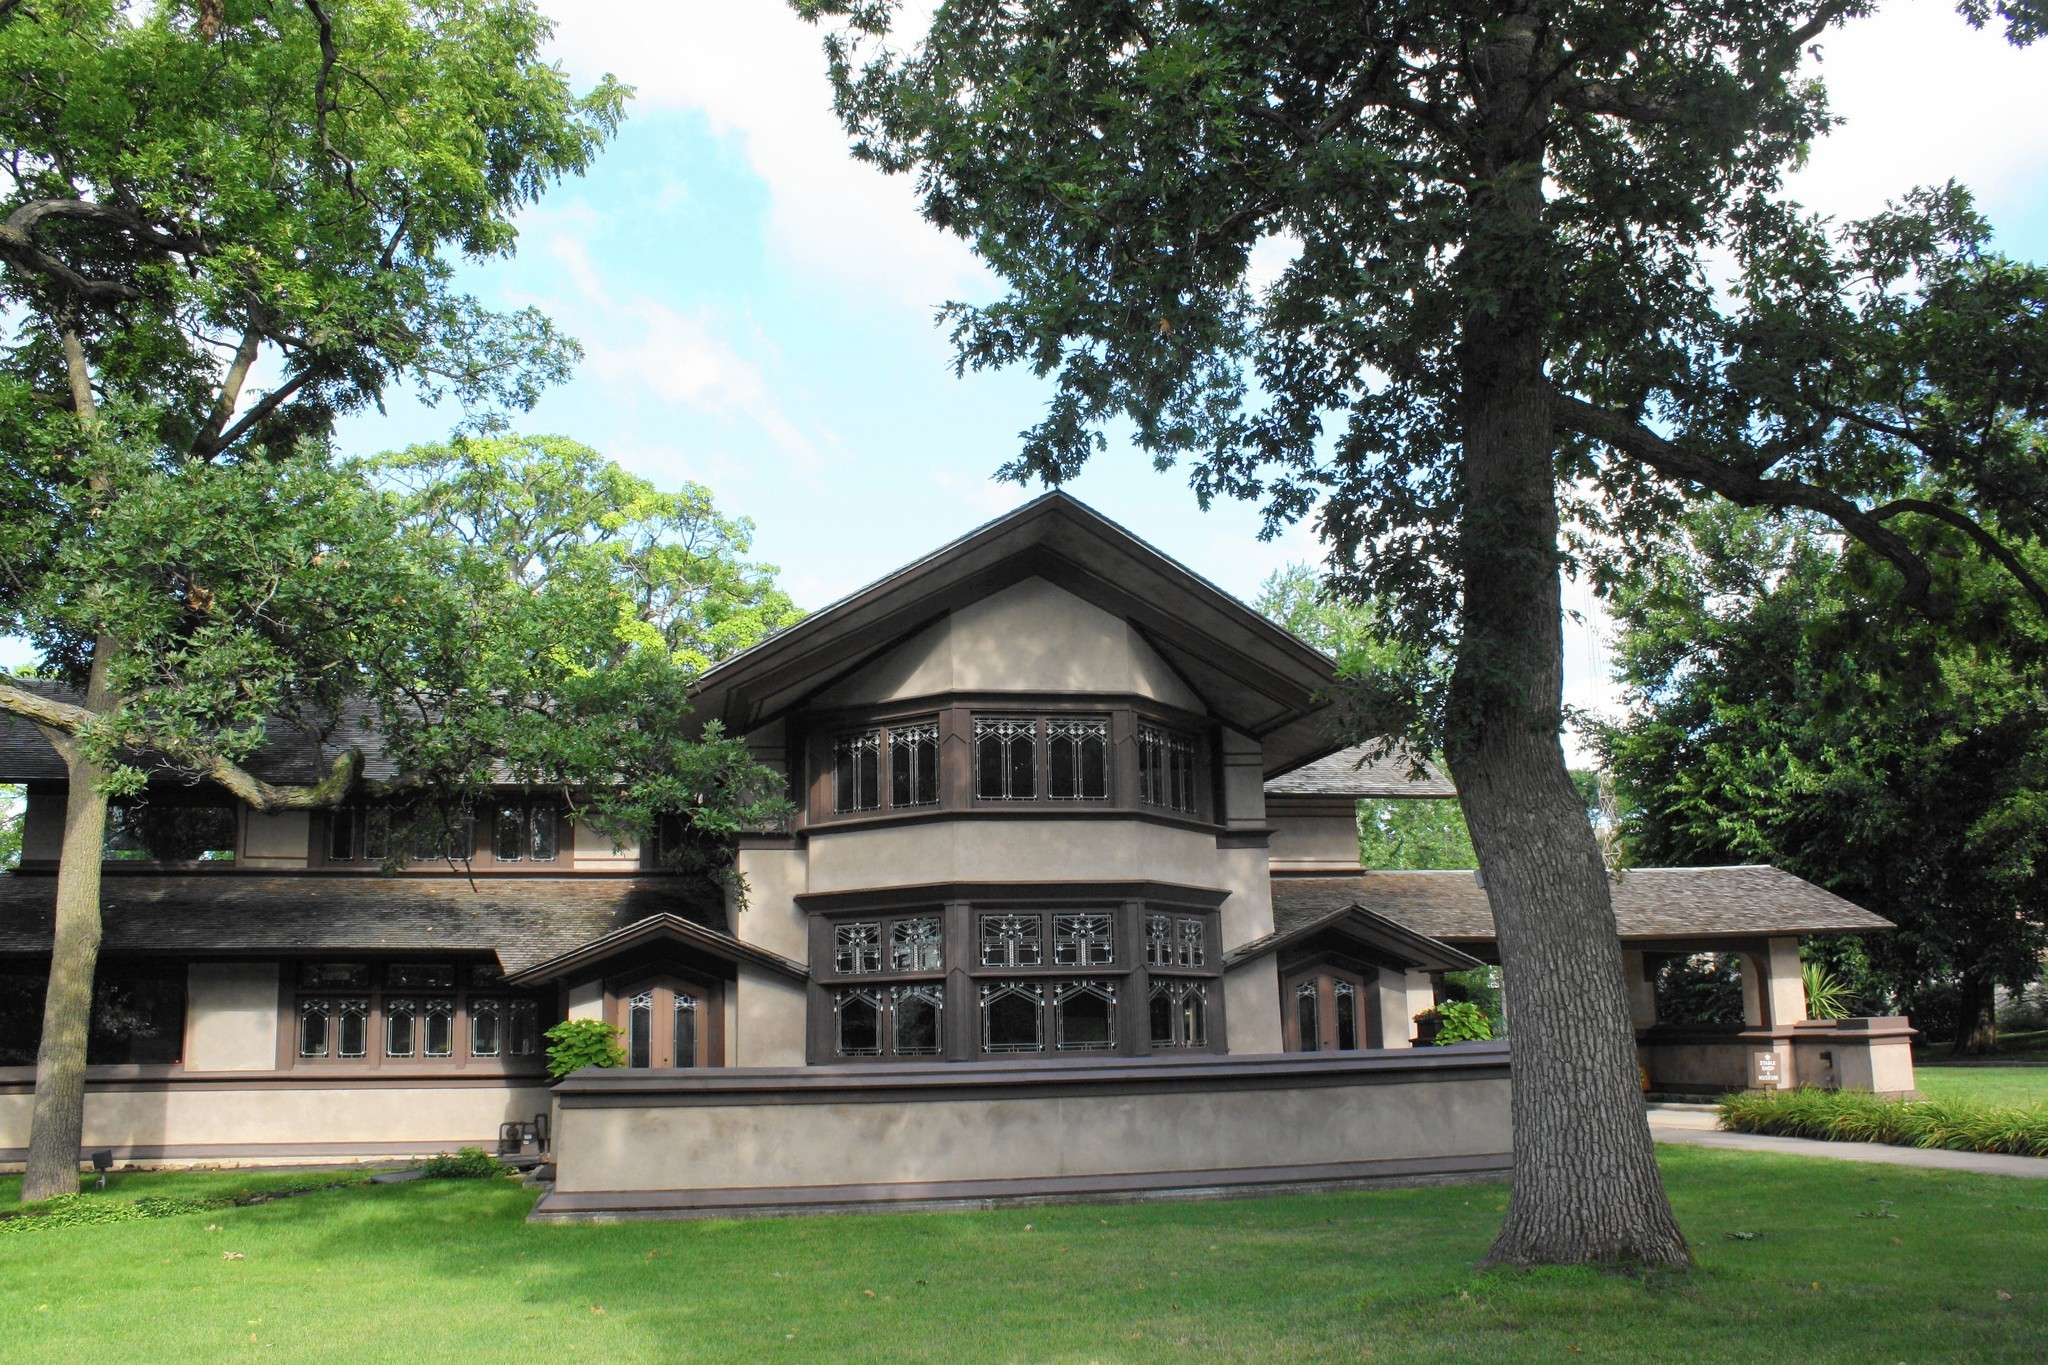 frank lloyd wright day trips to take in midwest properties frank lloyd wright day trips to take in midwest properties chicago tribune